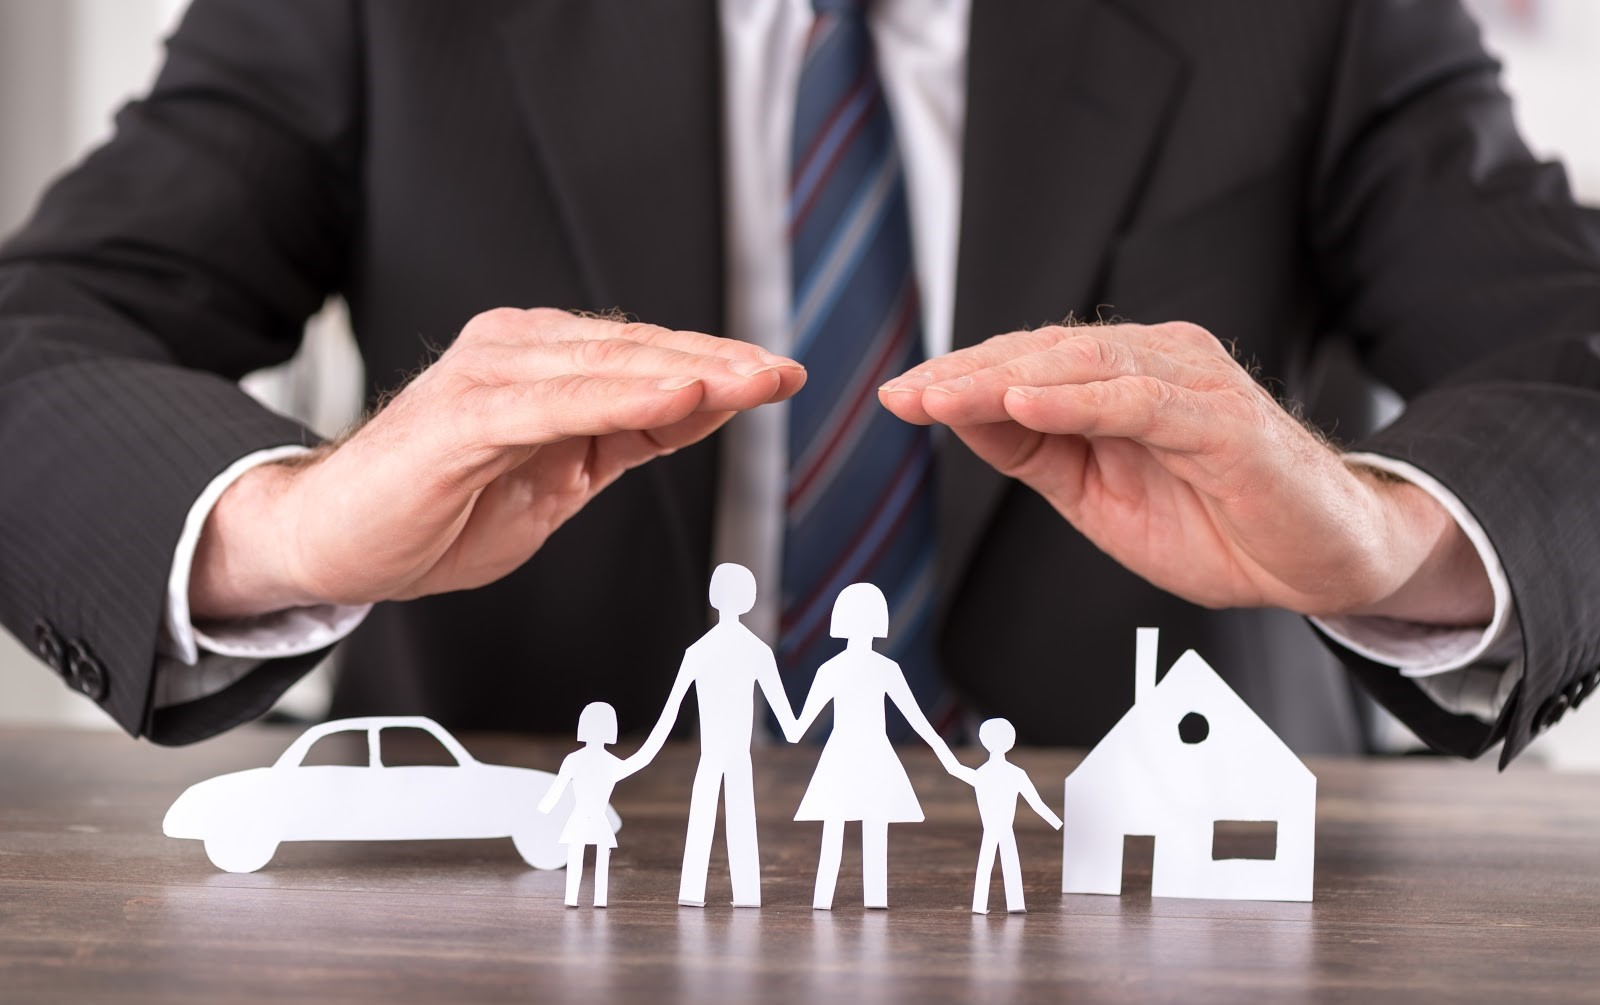 Global Whole juvenile life insurance Market 2020 Industry Growth ...